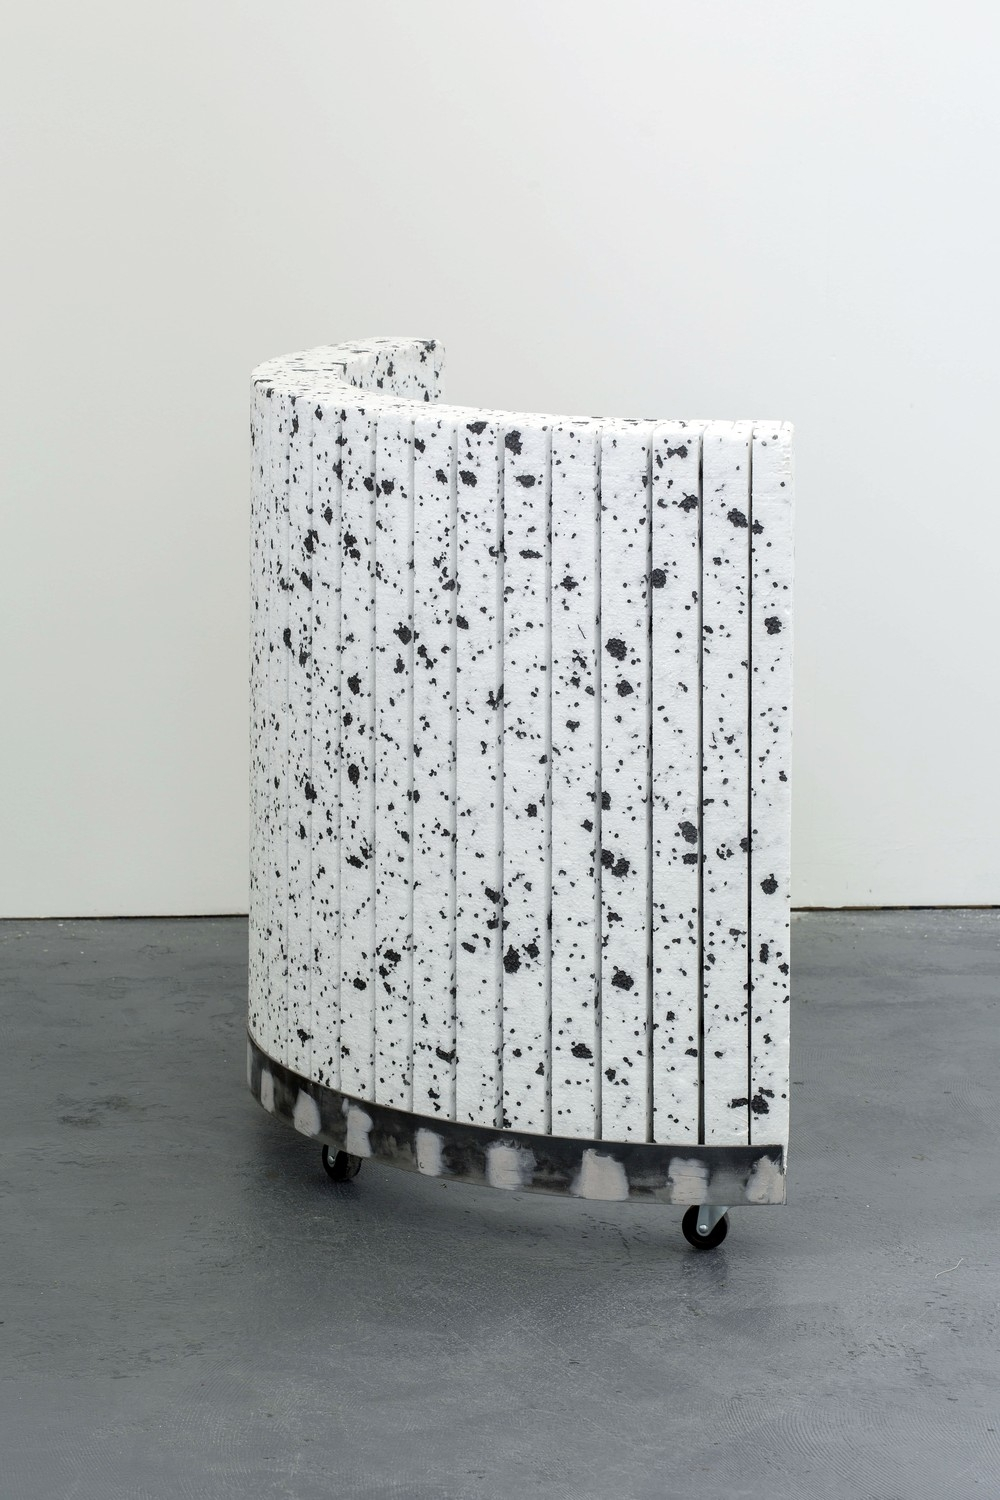 Camille Yvert – Permanent Transit, Polystyrene, metal, plywood, car body filler, wheels. 120 x 150 x 25cm, 2017